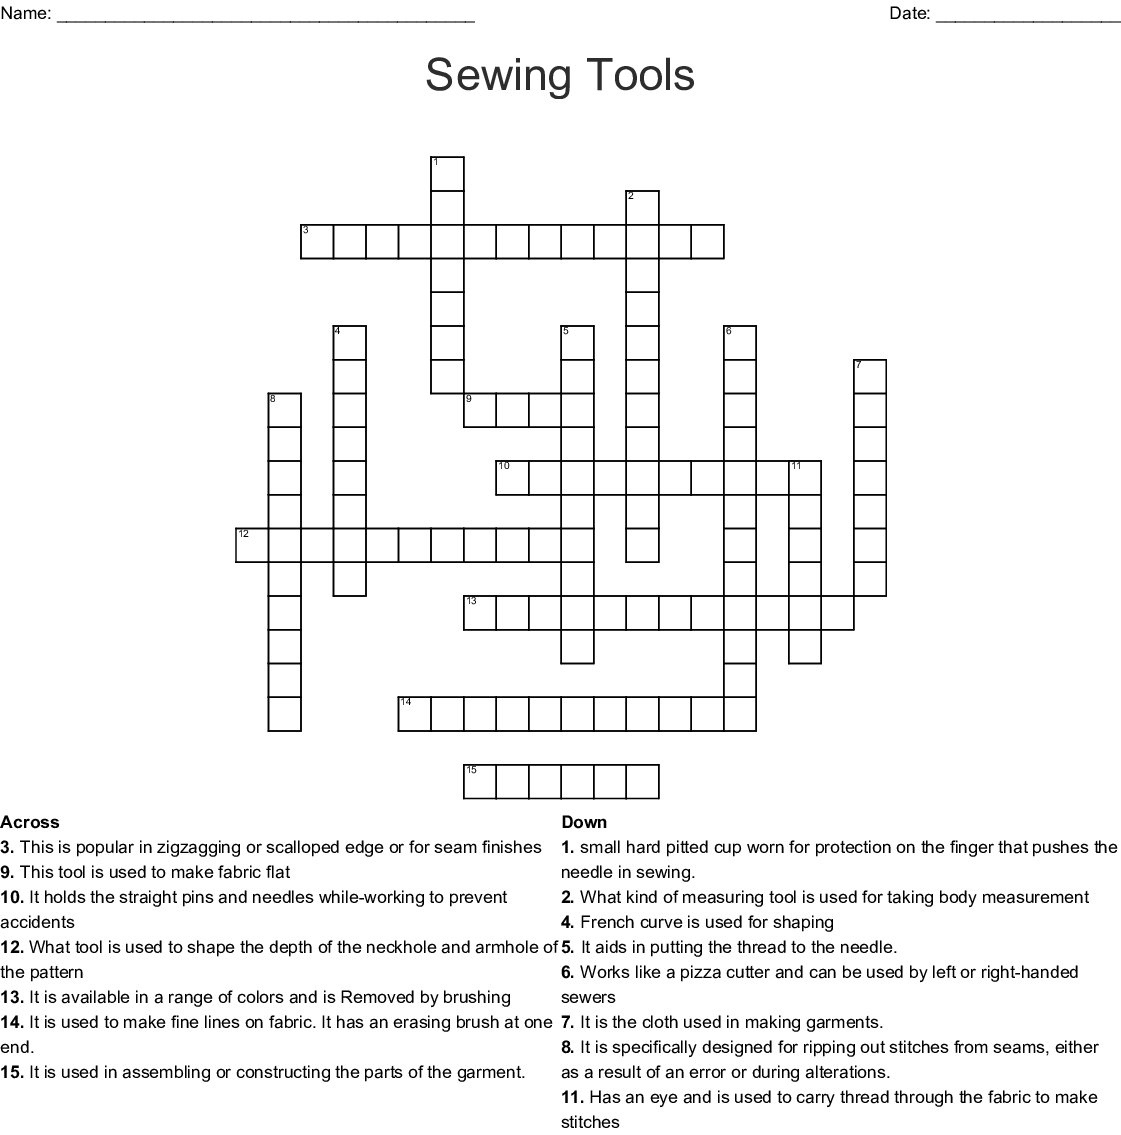 Sewing Terms Crossword Puzzle